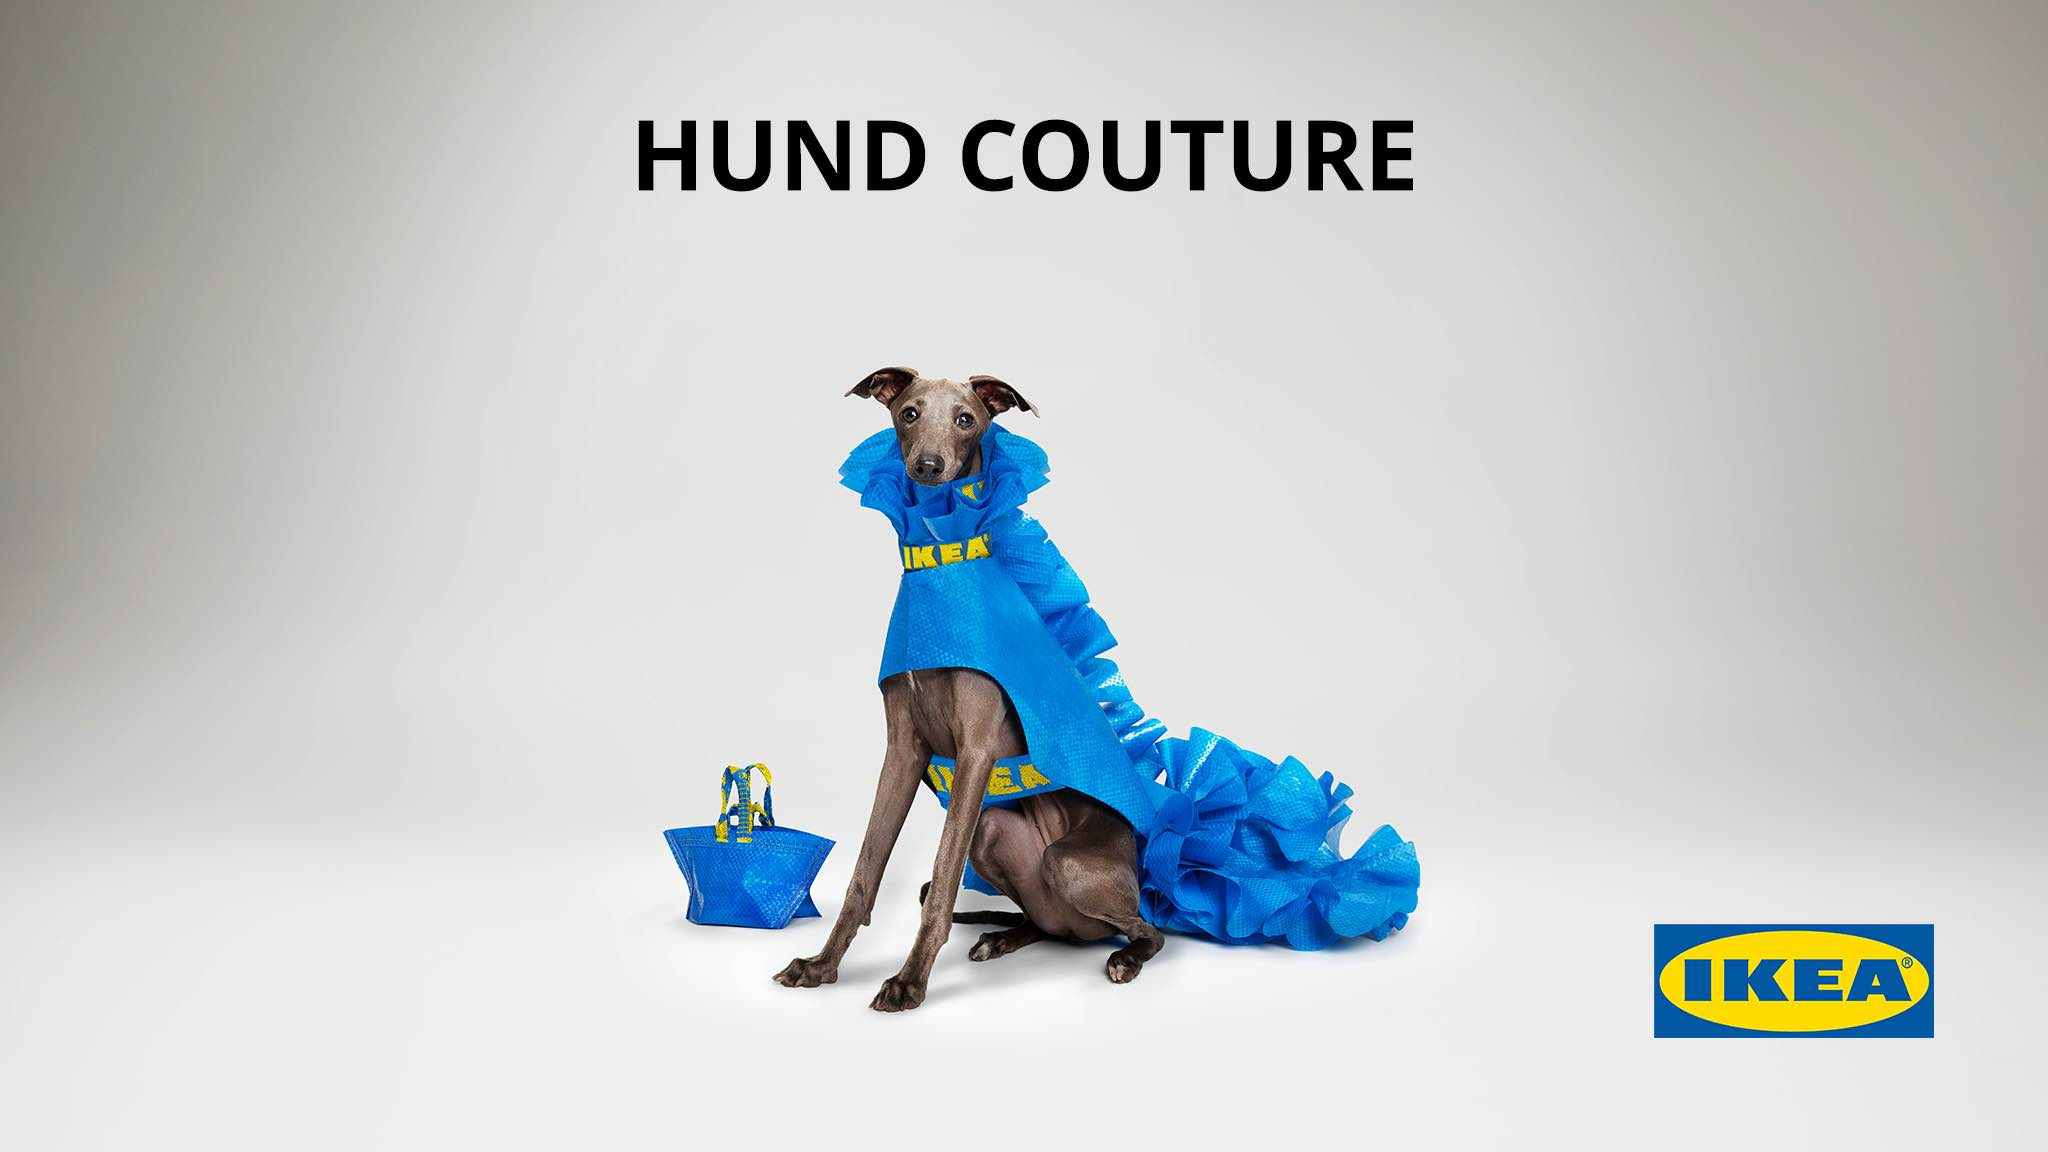 IKEA Australia launches HUND COUTURE for dogs in April Fools' Day campaign